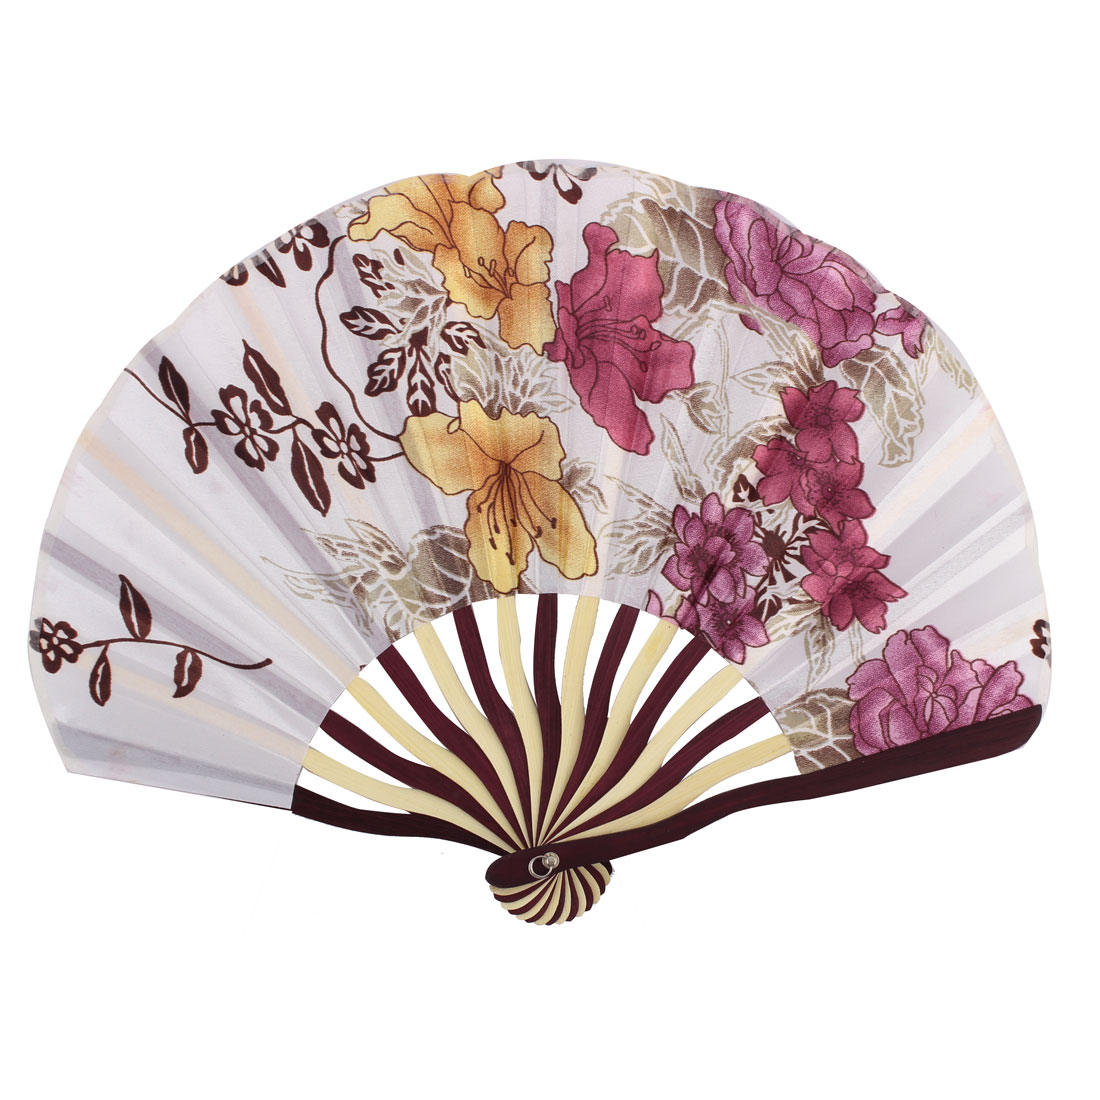 Lady Bamboo Frame Flower Pattern Dance Wedding Party Folding Hand Fan Pink